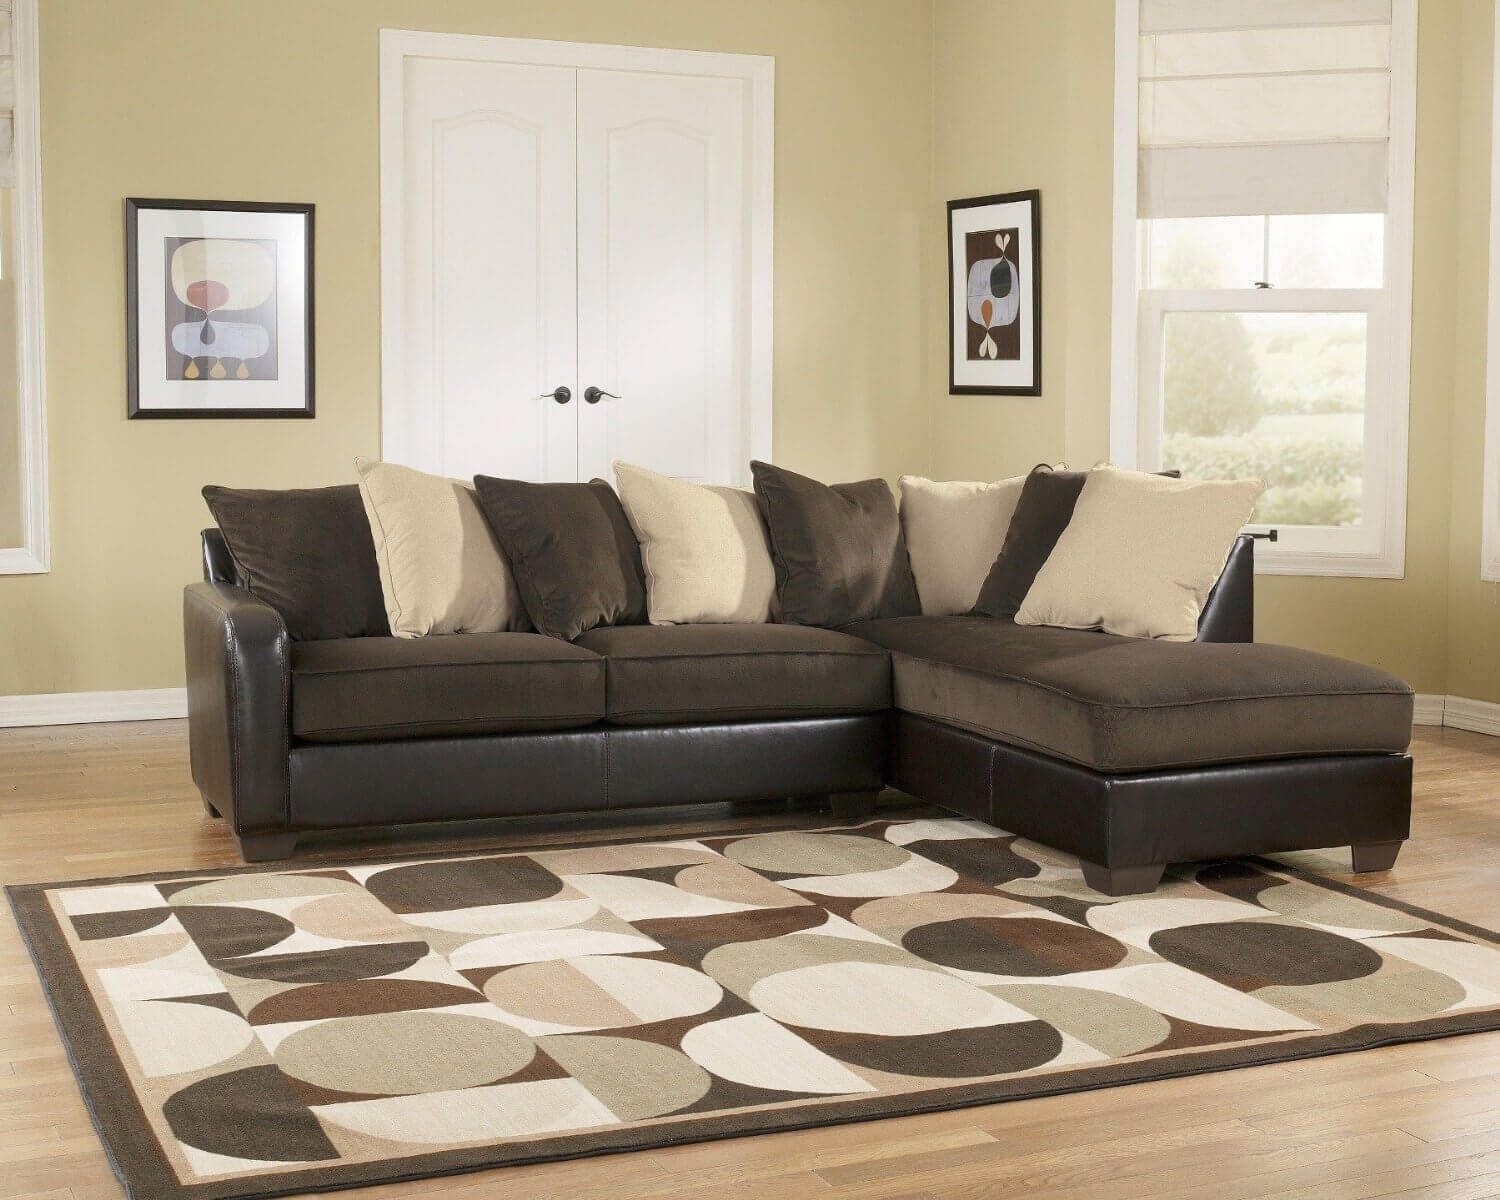 100 Beautiful Sectional Sofas Under 1000 With Eco Friendly Sectional Sofa (Image 1 of 15)